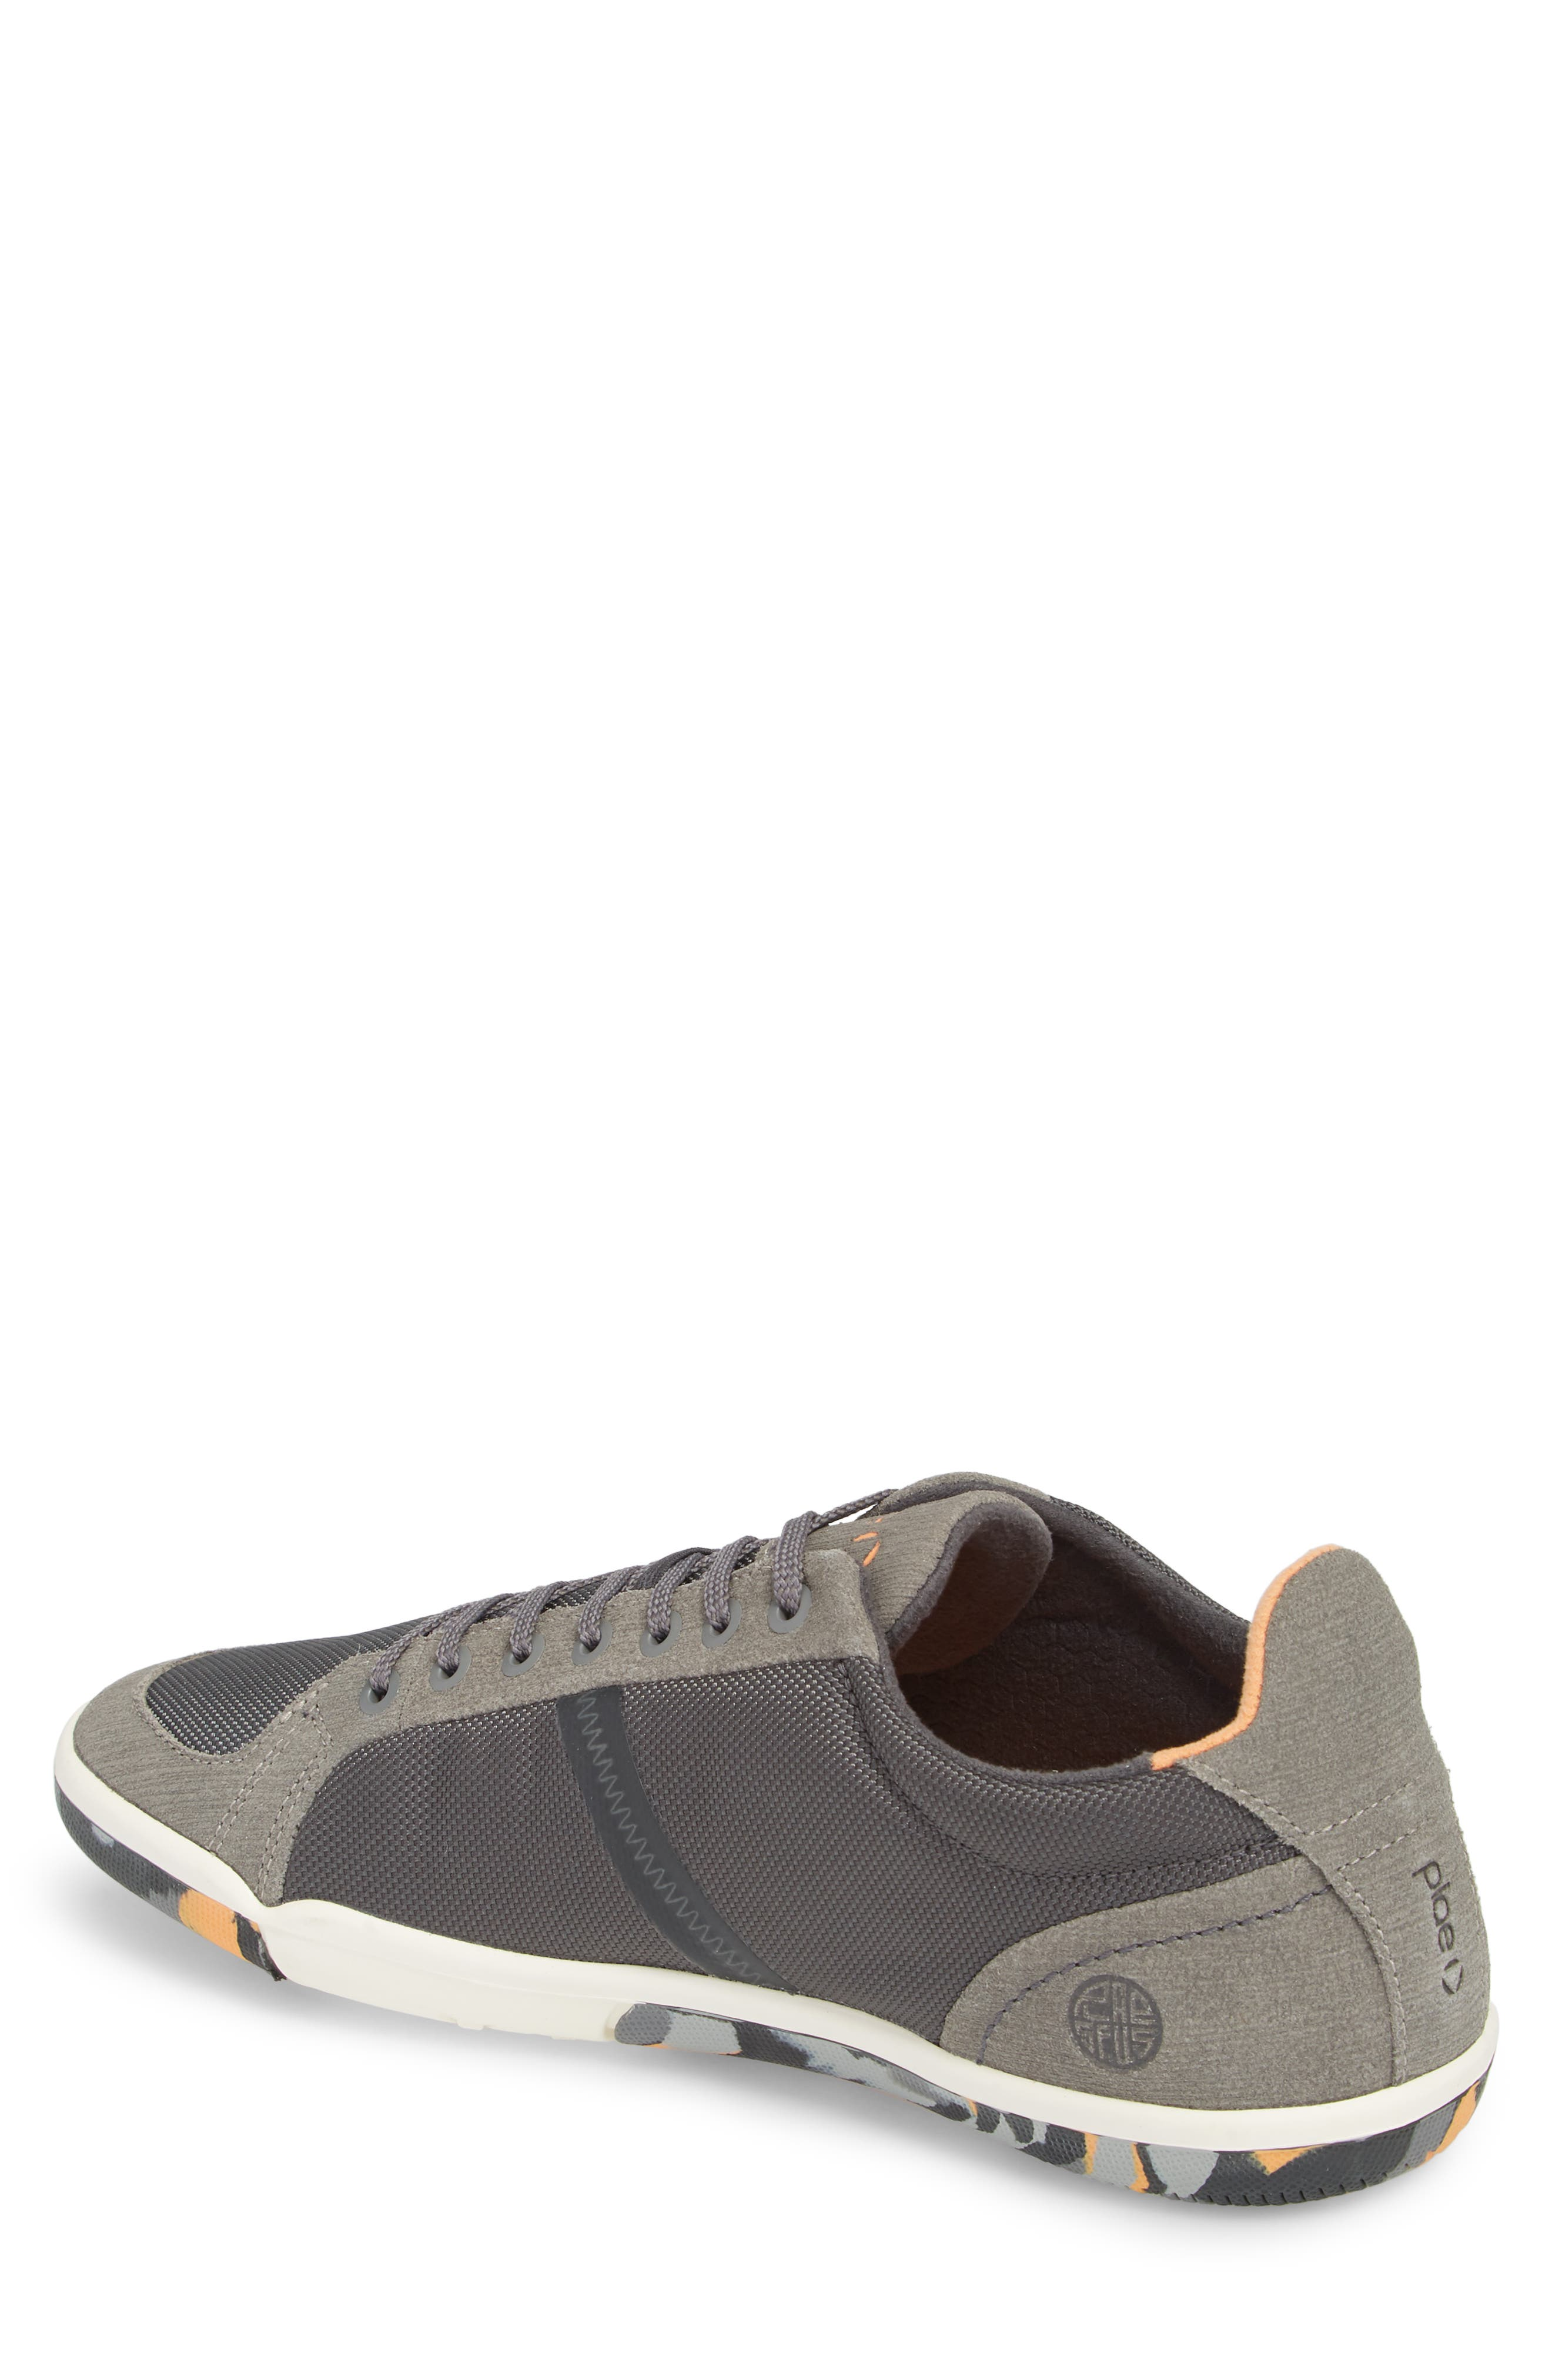 Prospect Low Top Sneaker,                             Alternate thumbnail 2, color,                             HYPERSPACE